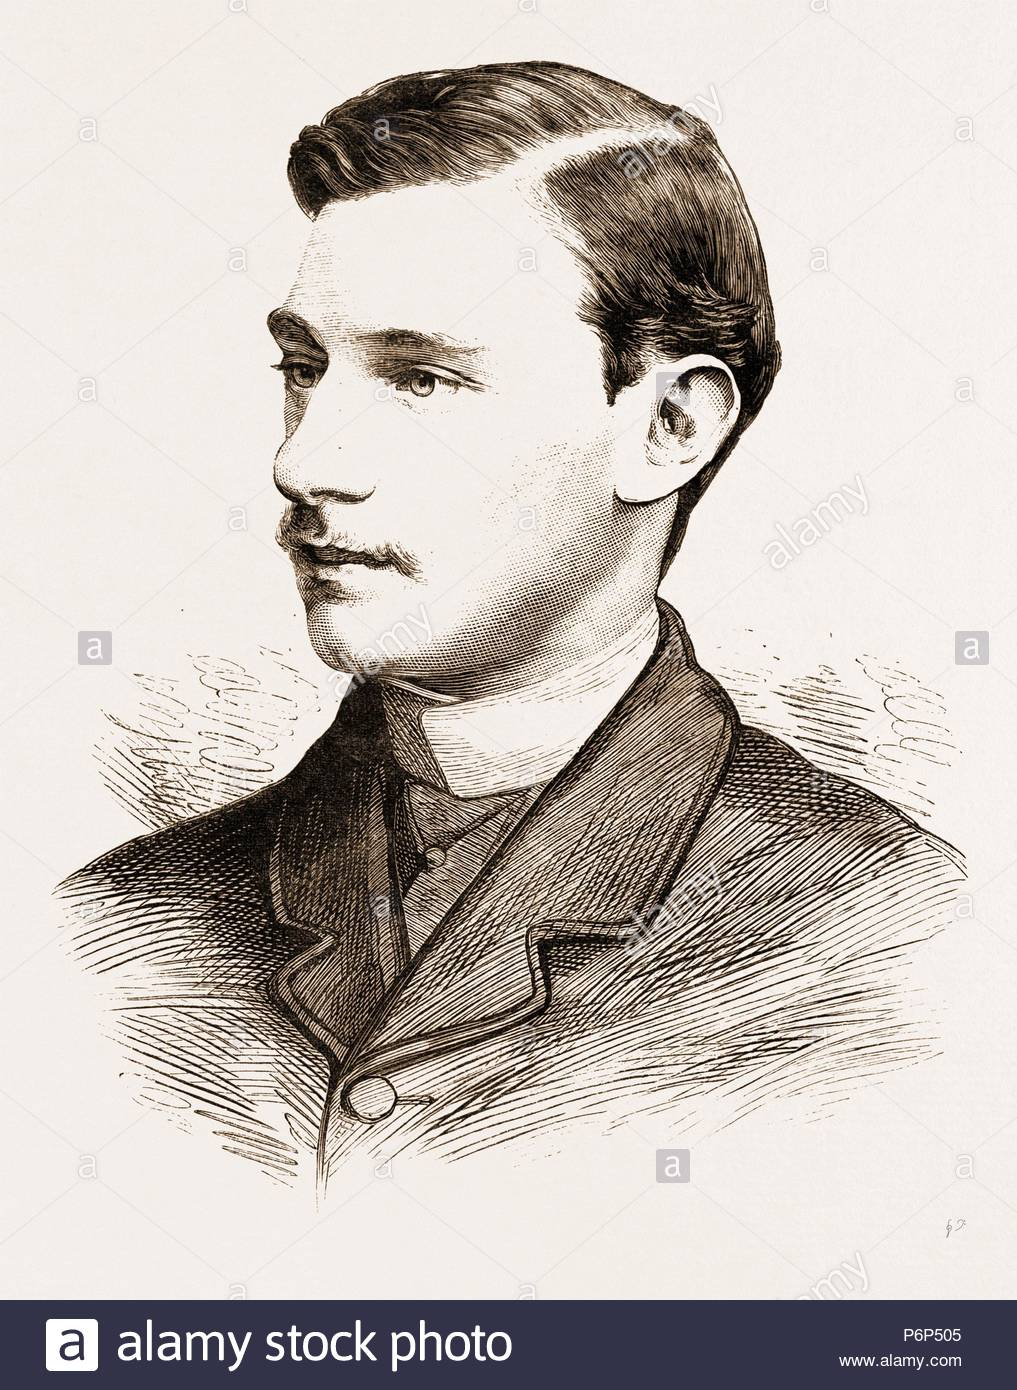 THE EARL OF YARBOROUGH (SECONDER IN THE HOUSE OF LORDS), 1881. - Stock Image